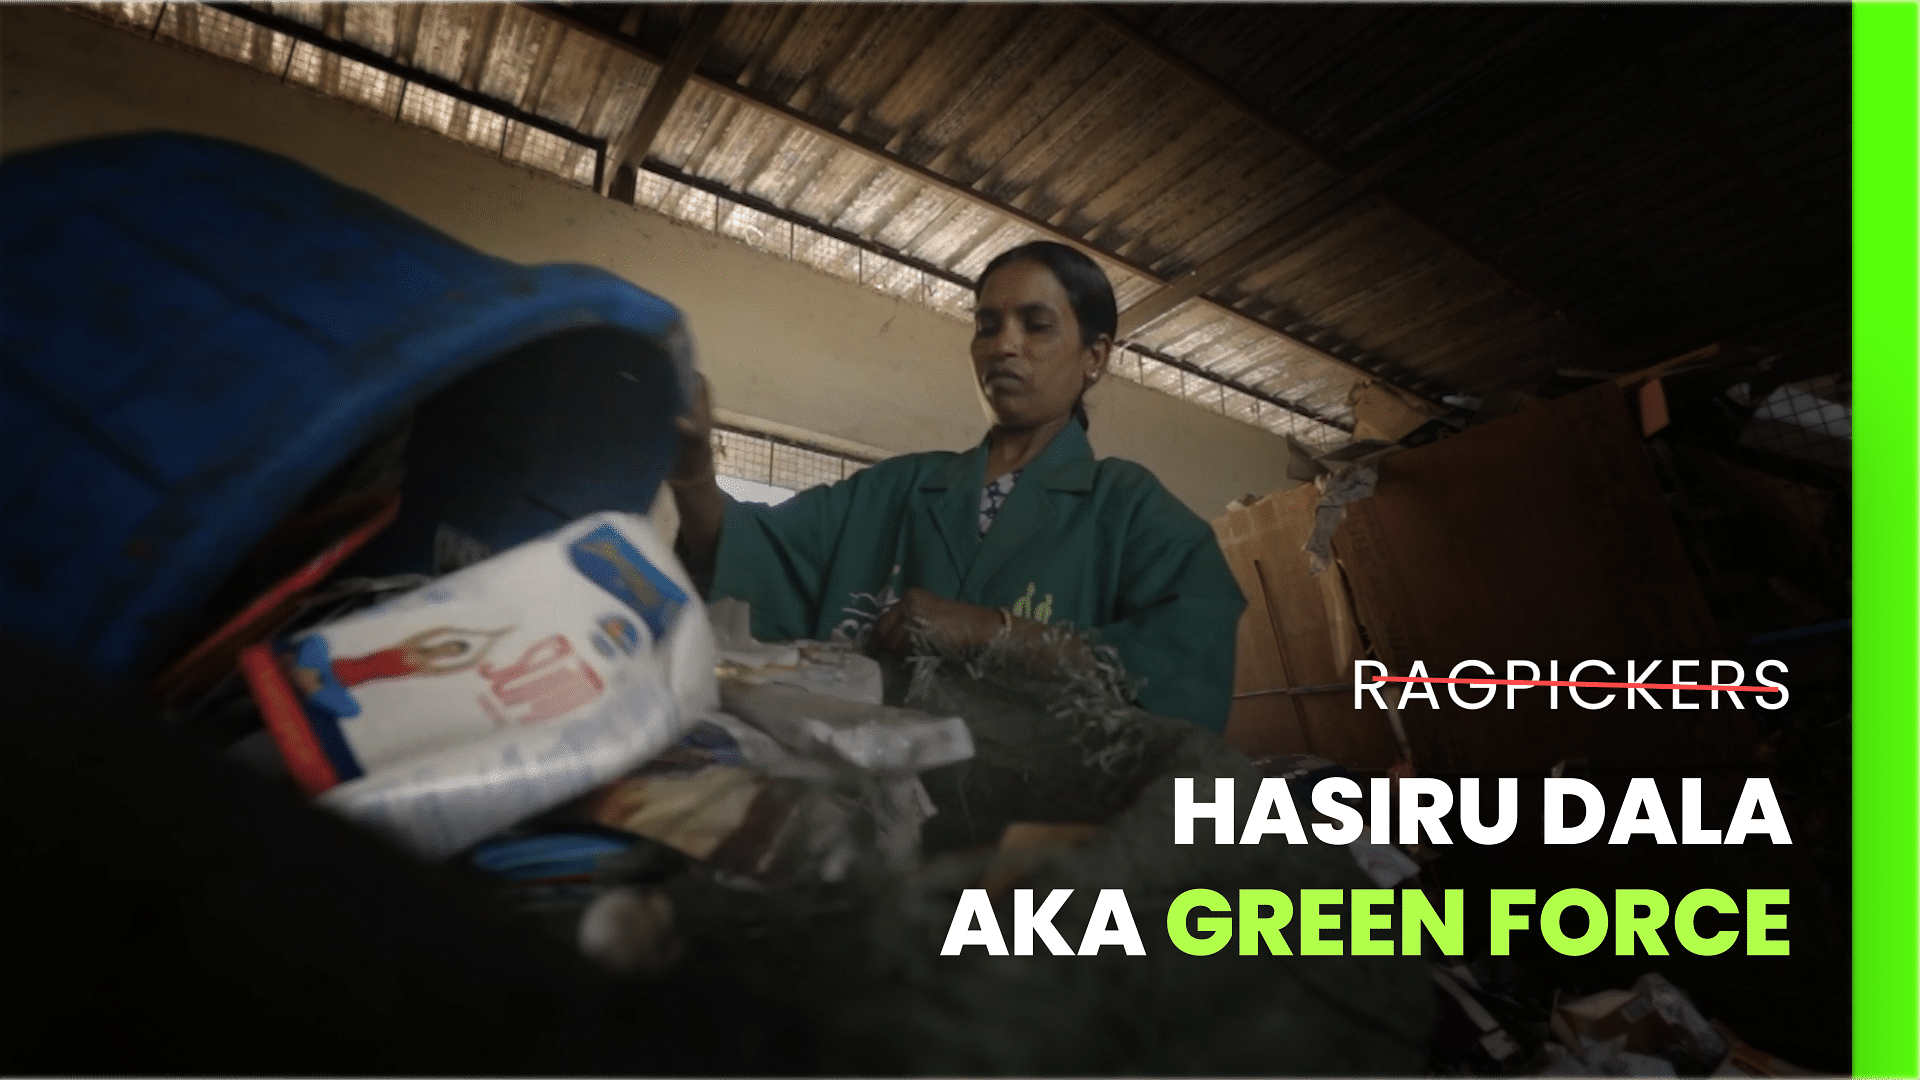 This Woman Is Helping 10,000 Ragpickers Win Big With Waste!